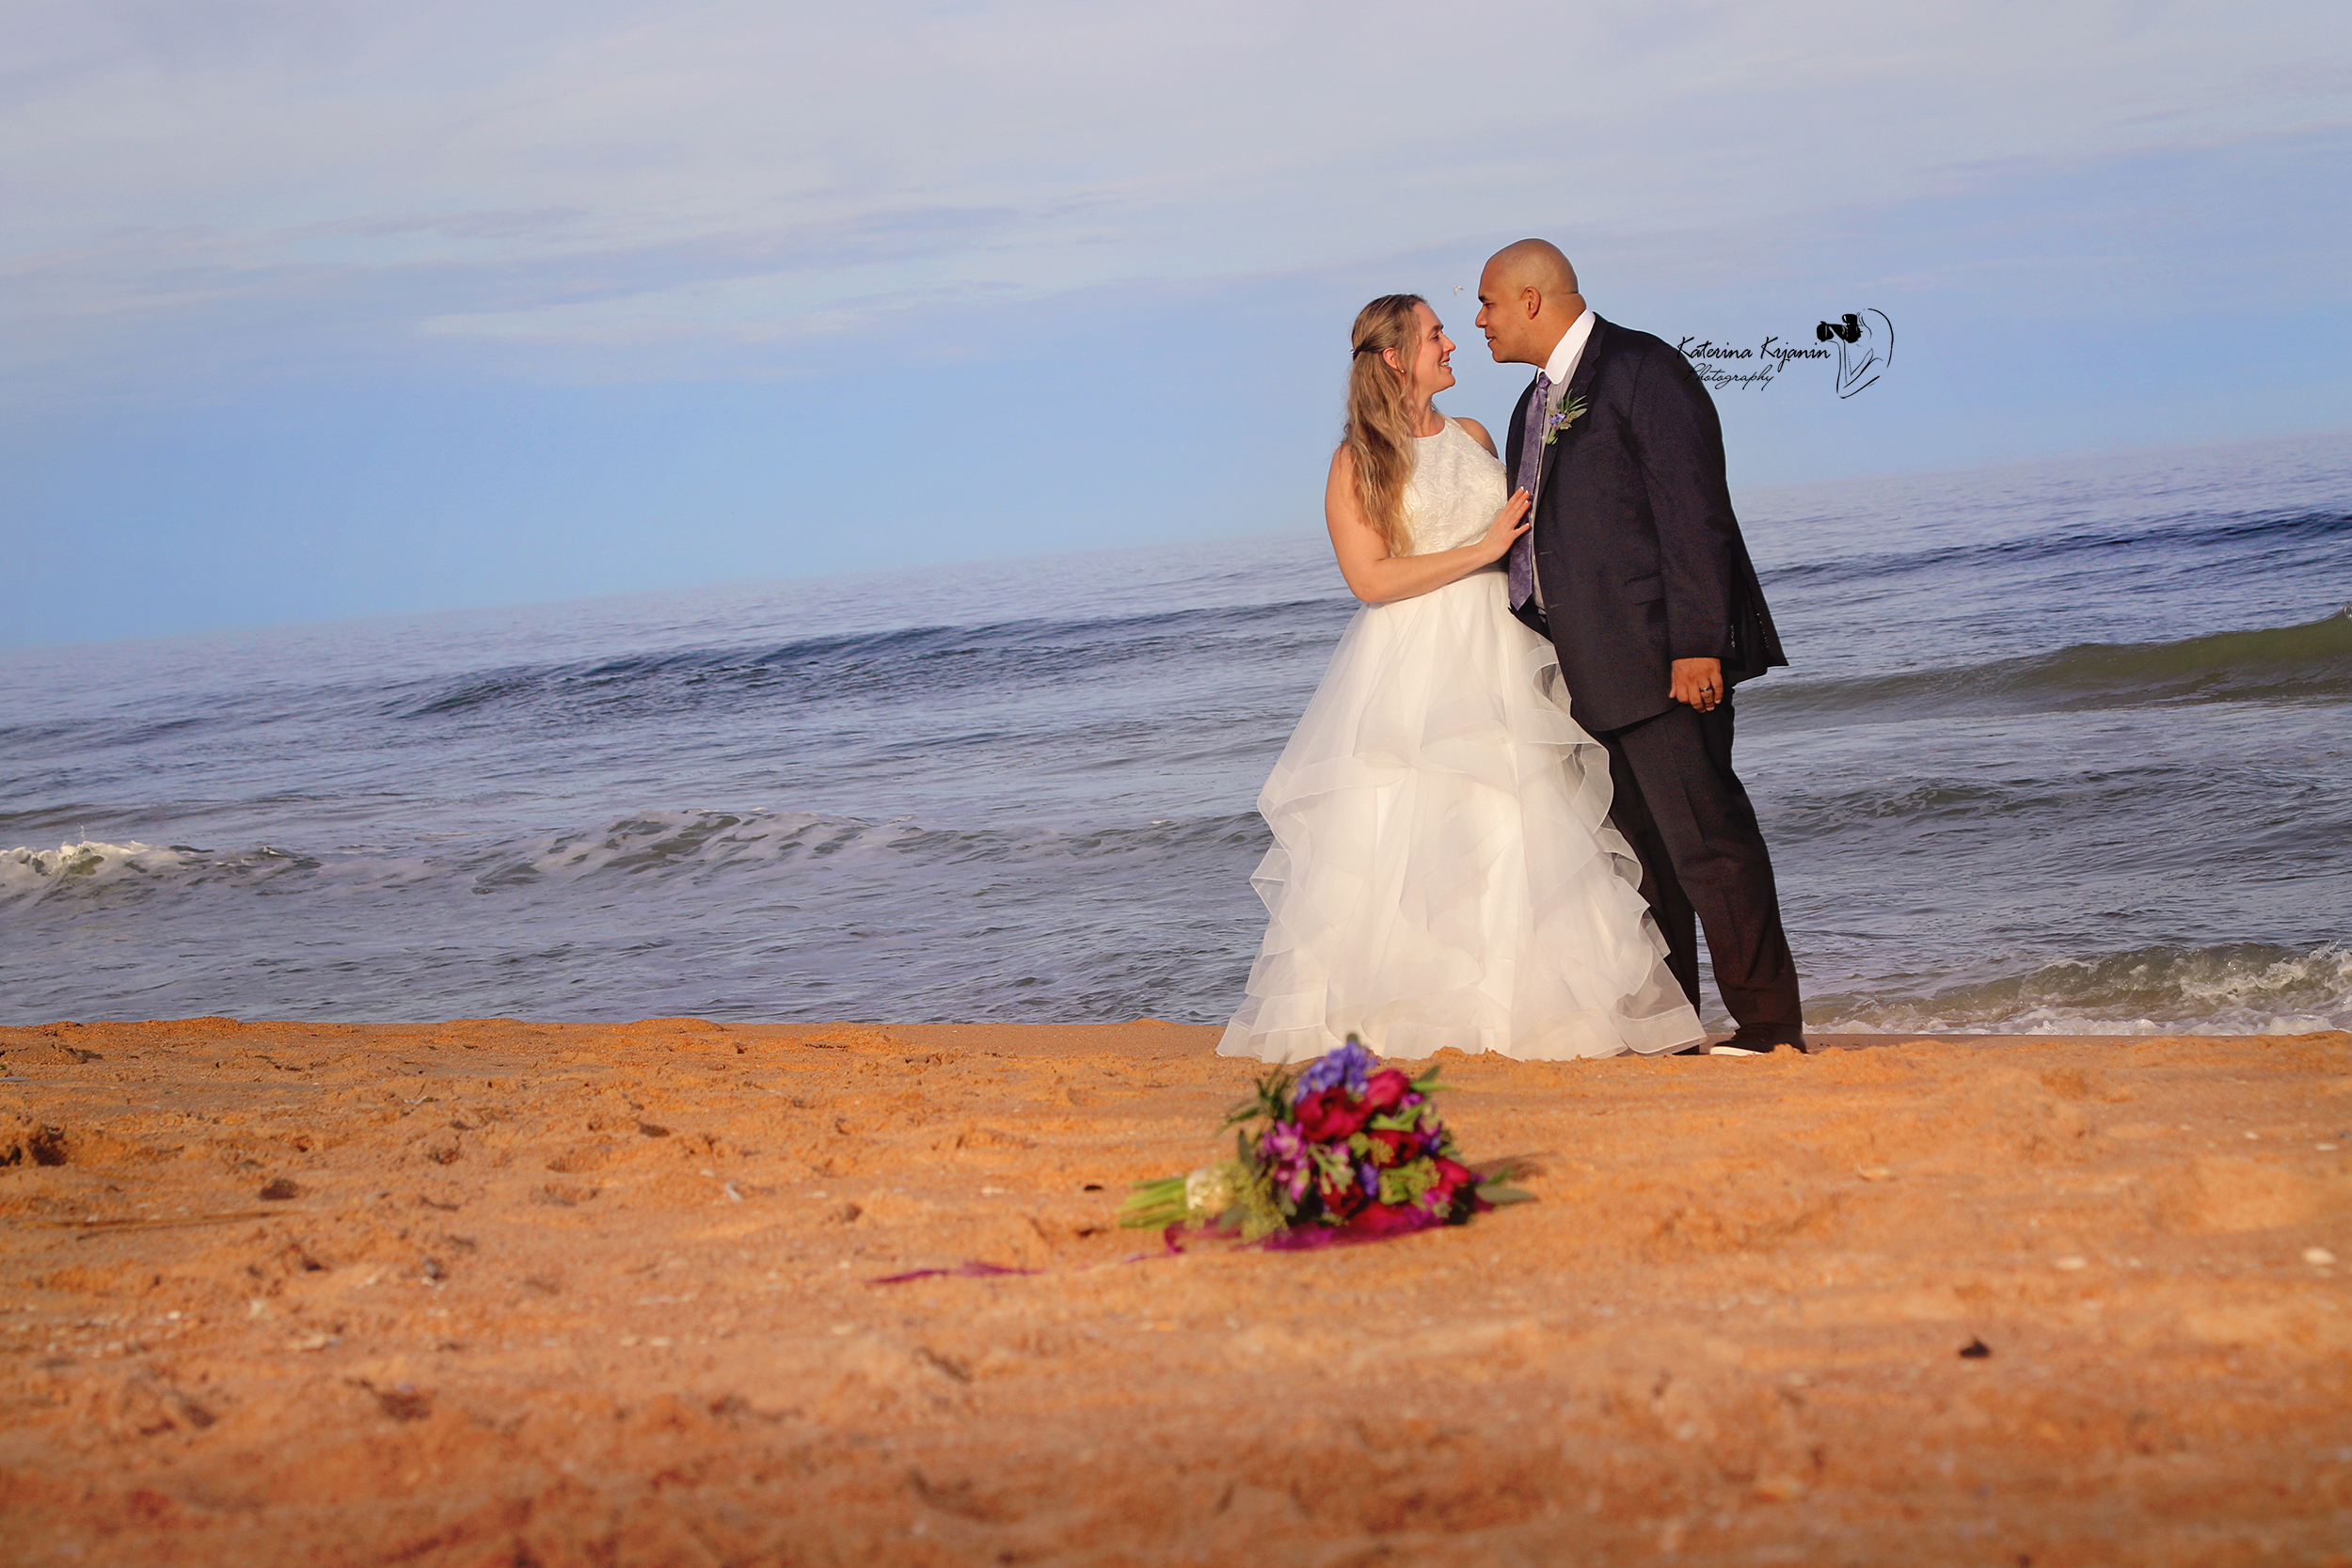 Professional wedding photography services and engagement photography sessions in Palm Coast Florida, Orlando, St. Augustine and Jacksonville